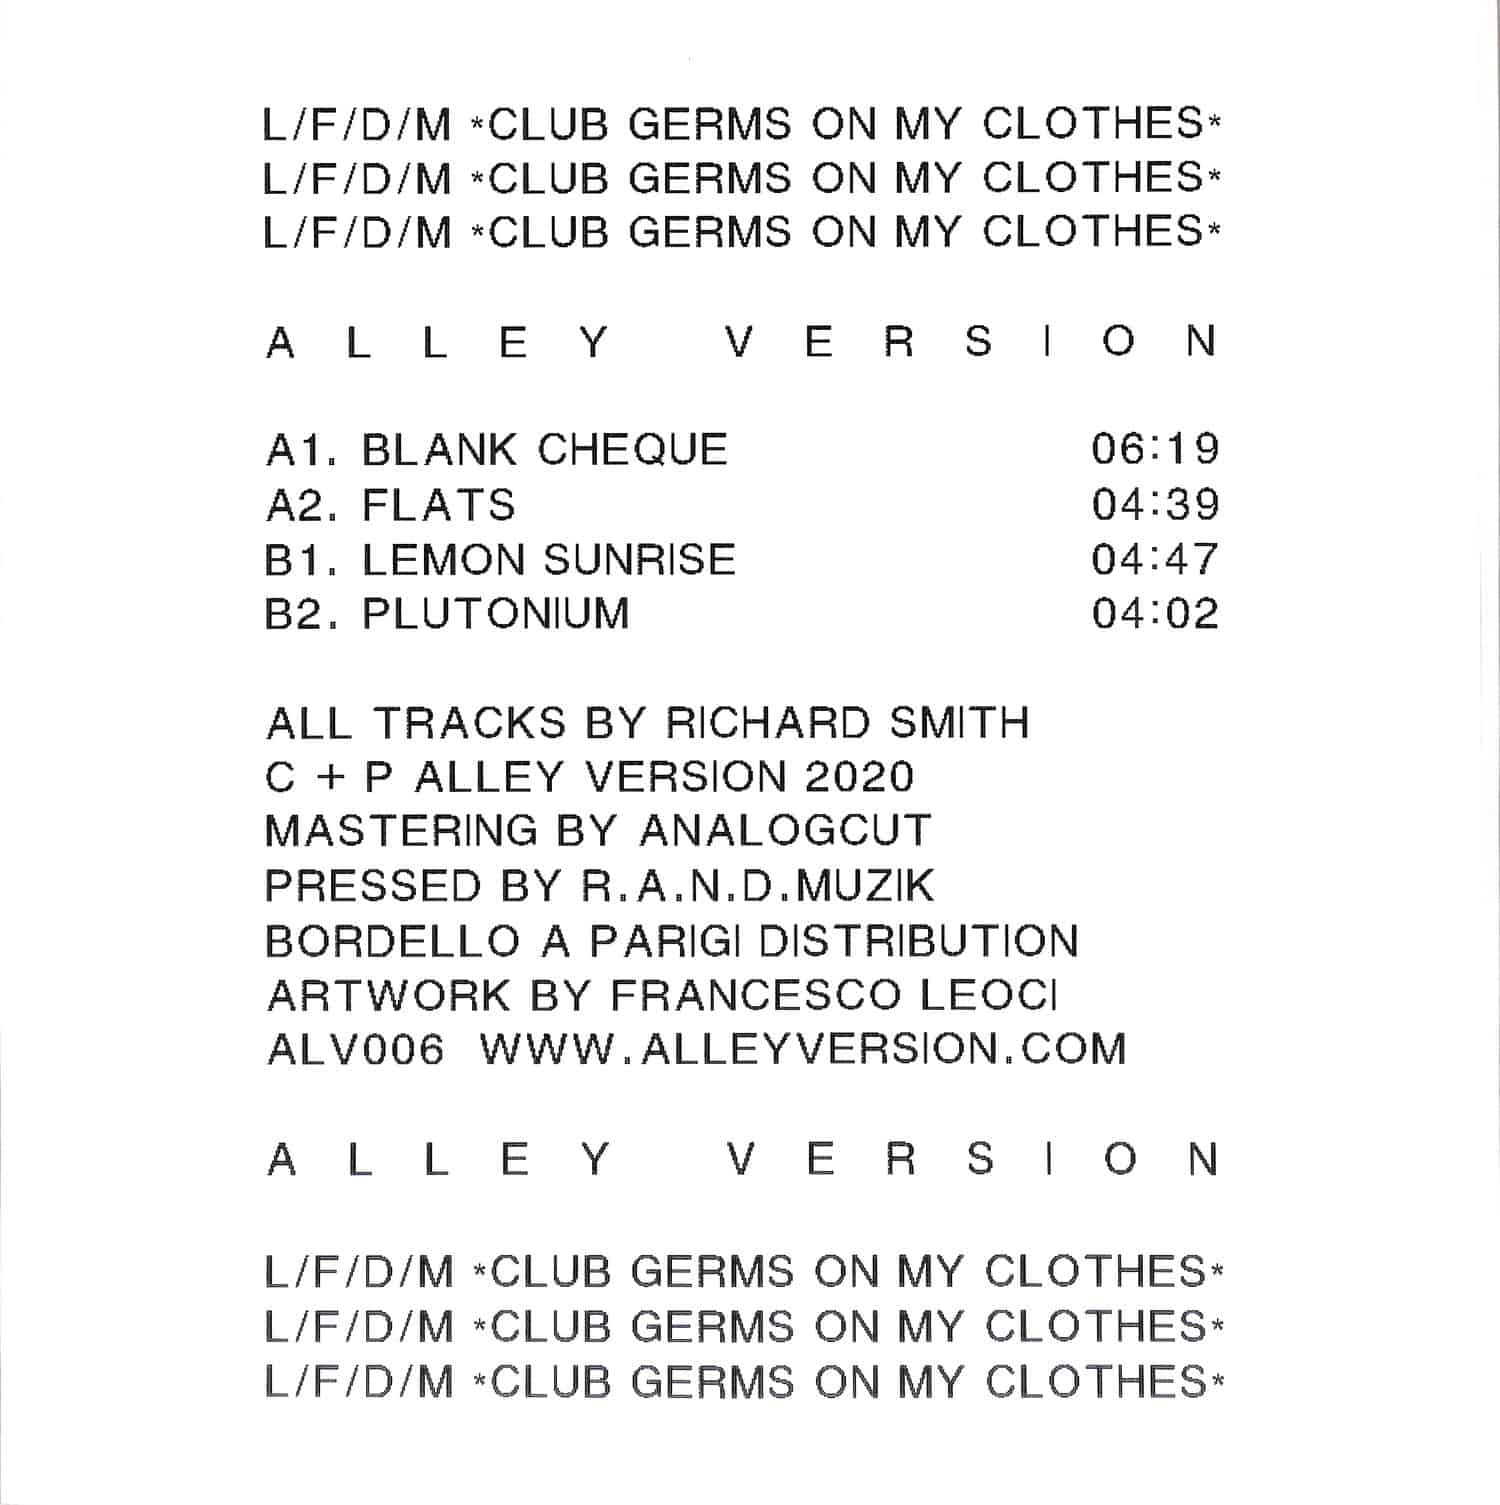 L/F/D/M - CLUB GERMS ON MY CLOTHES EP